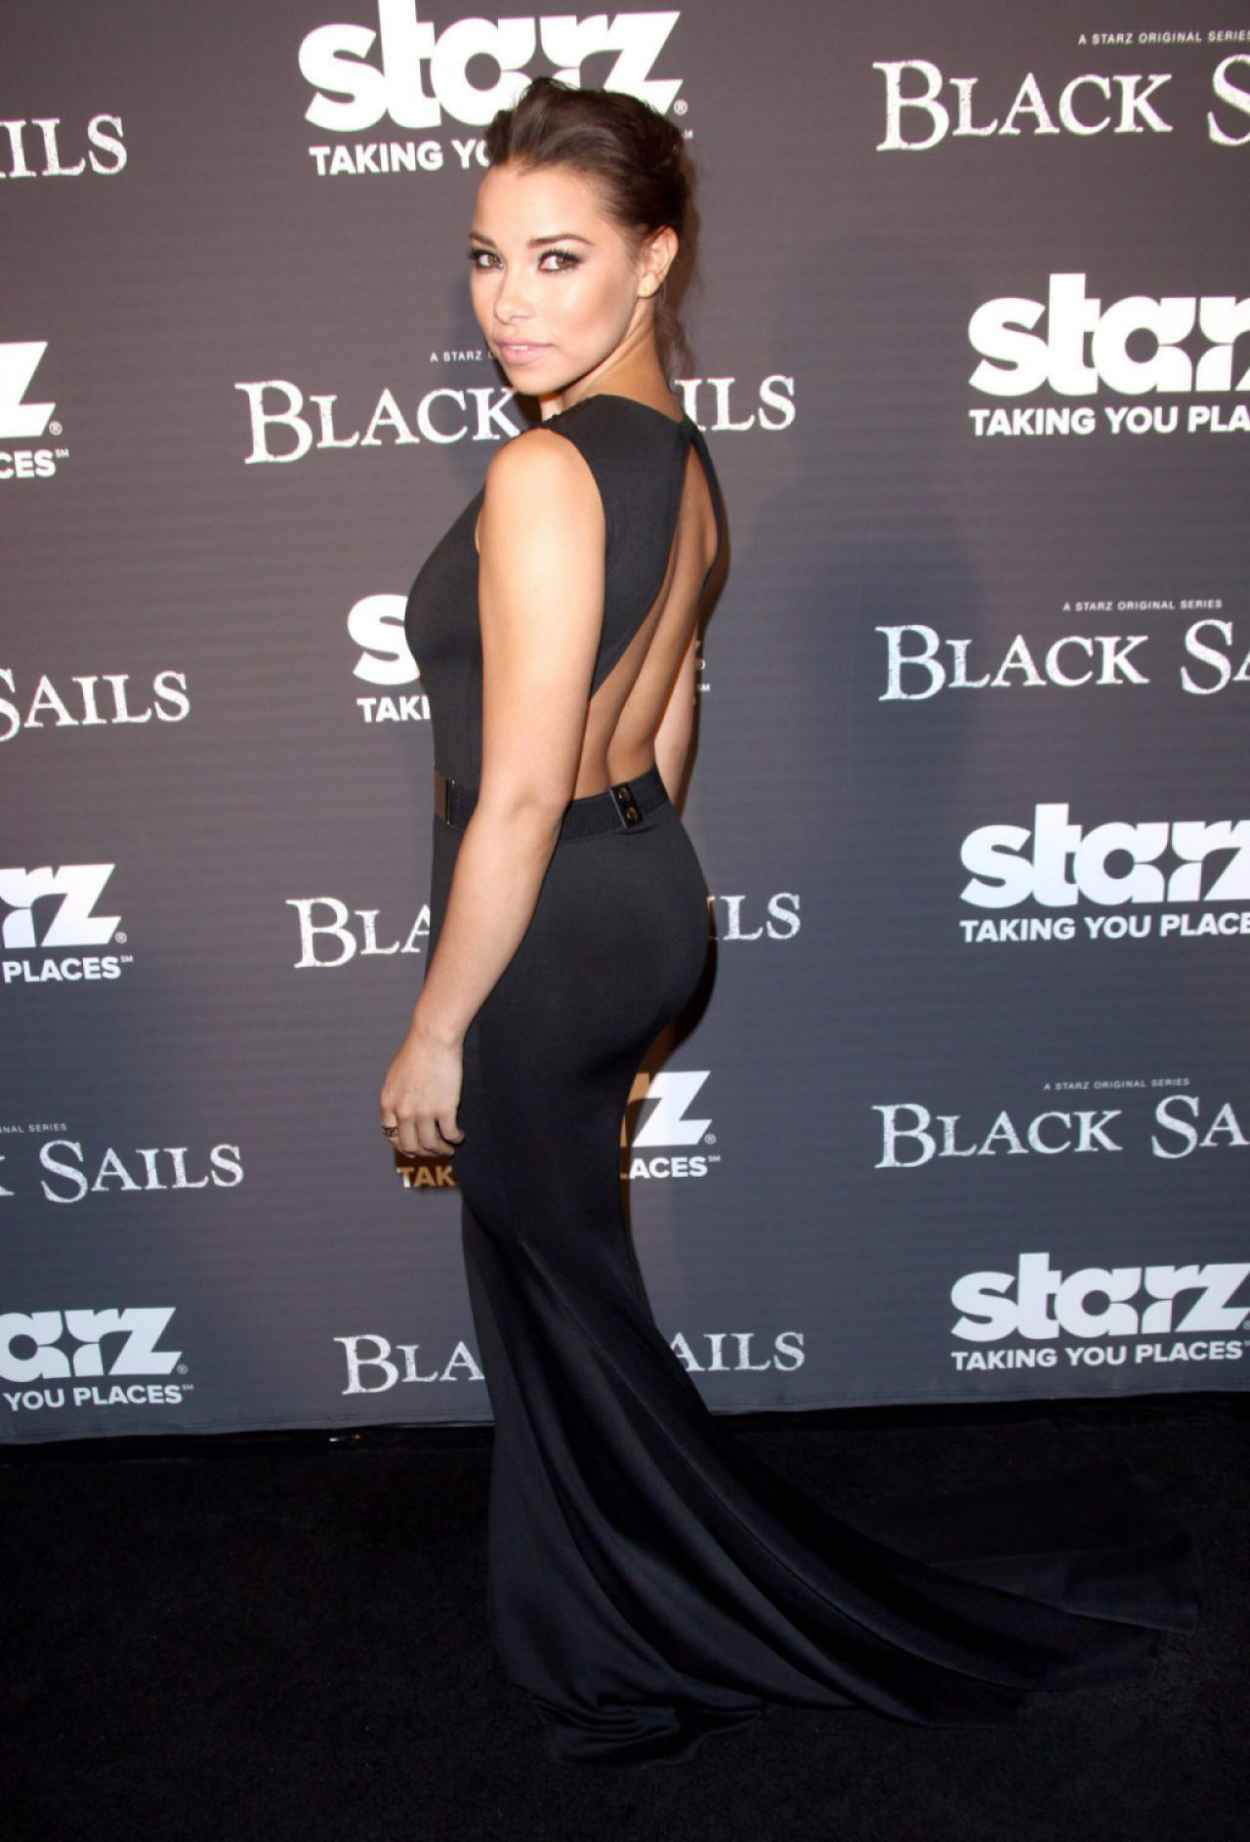 Jessica Parker Kennedy - STARZ BLACK SAILS Screening in Los Angeles - January 2015-1